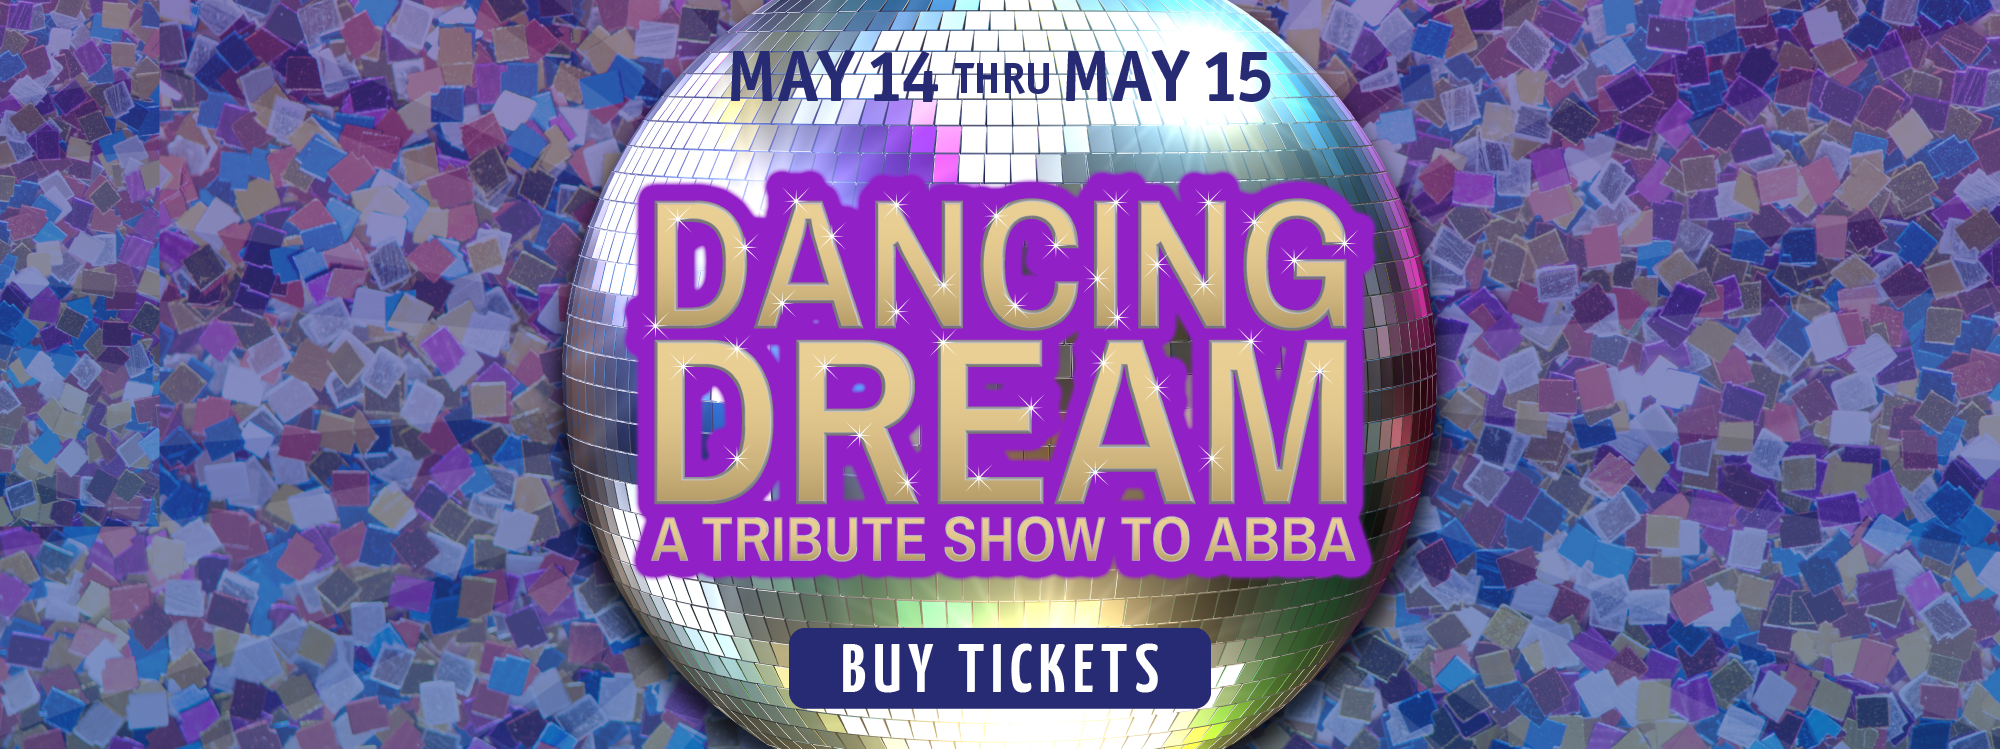 Dancing Dream; A Tribute Show to ABBA